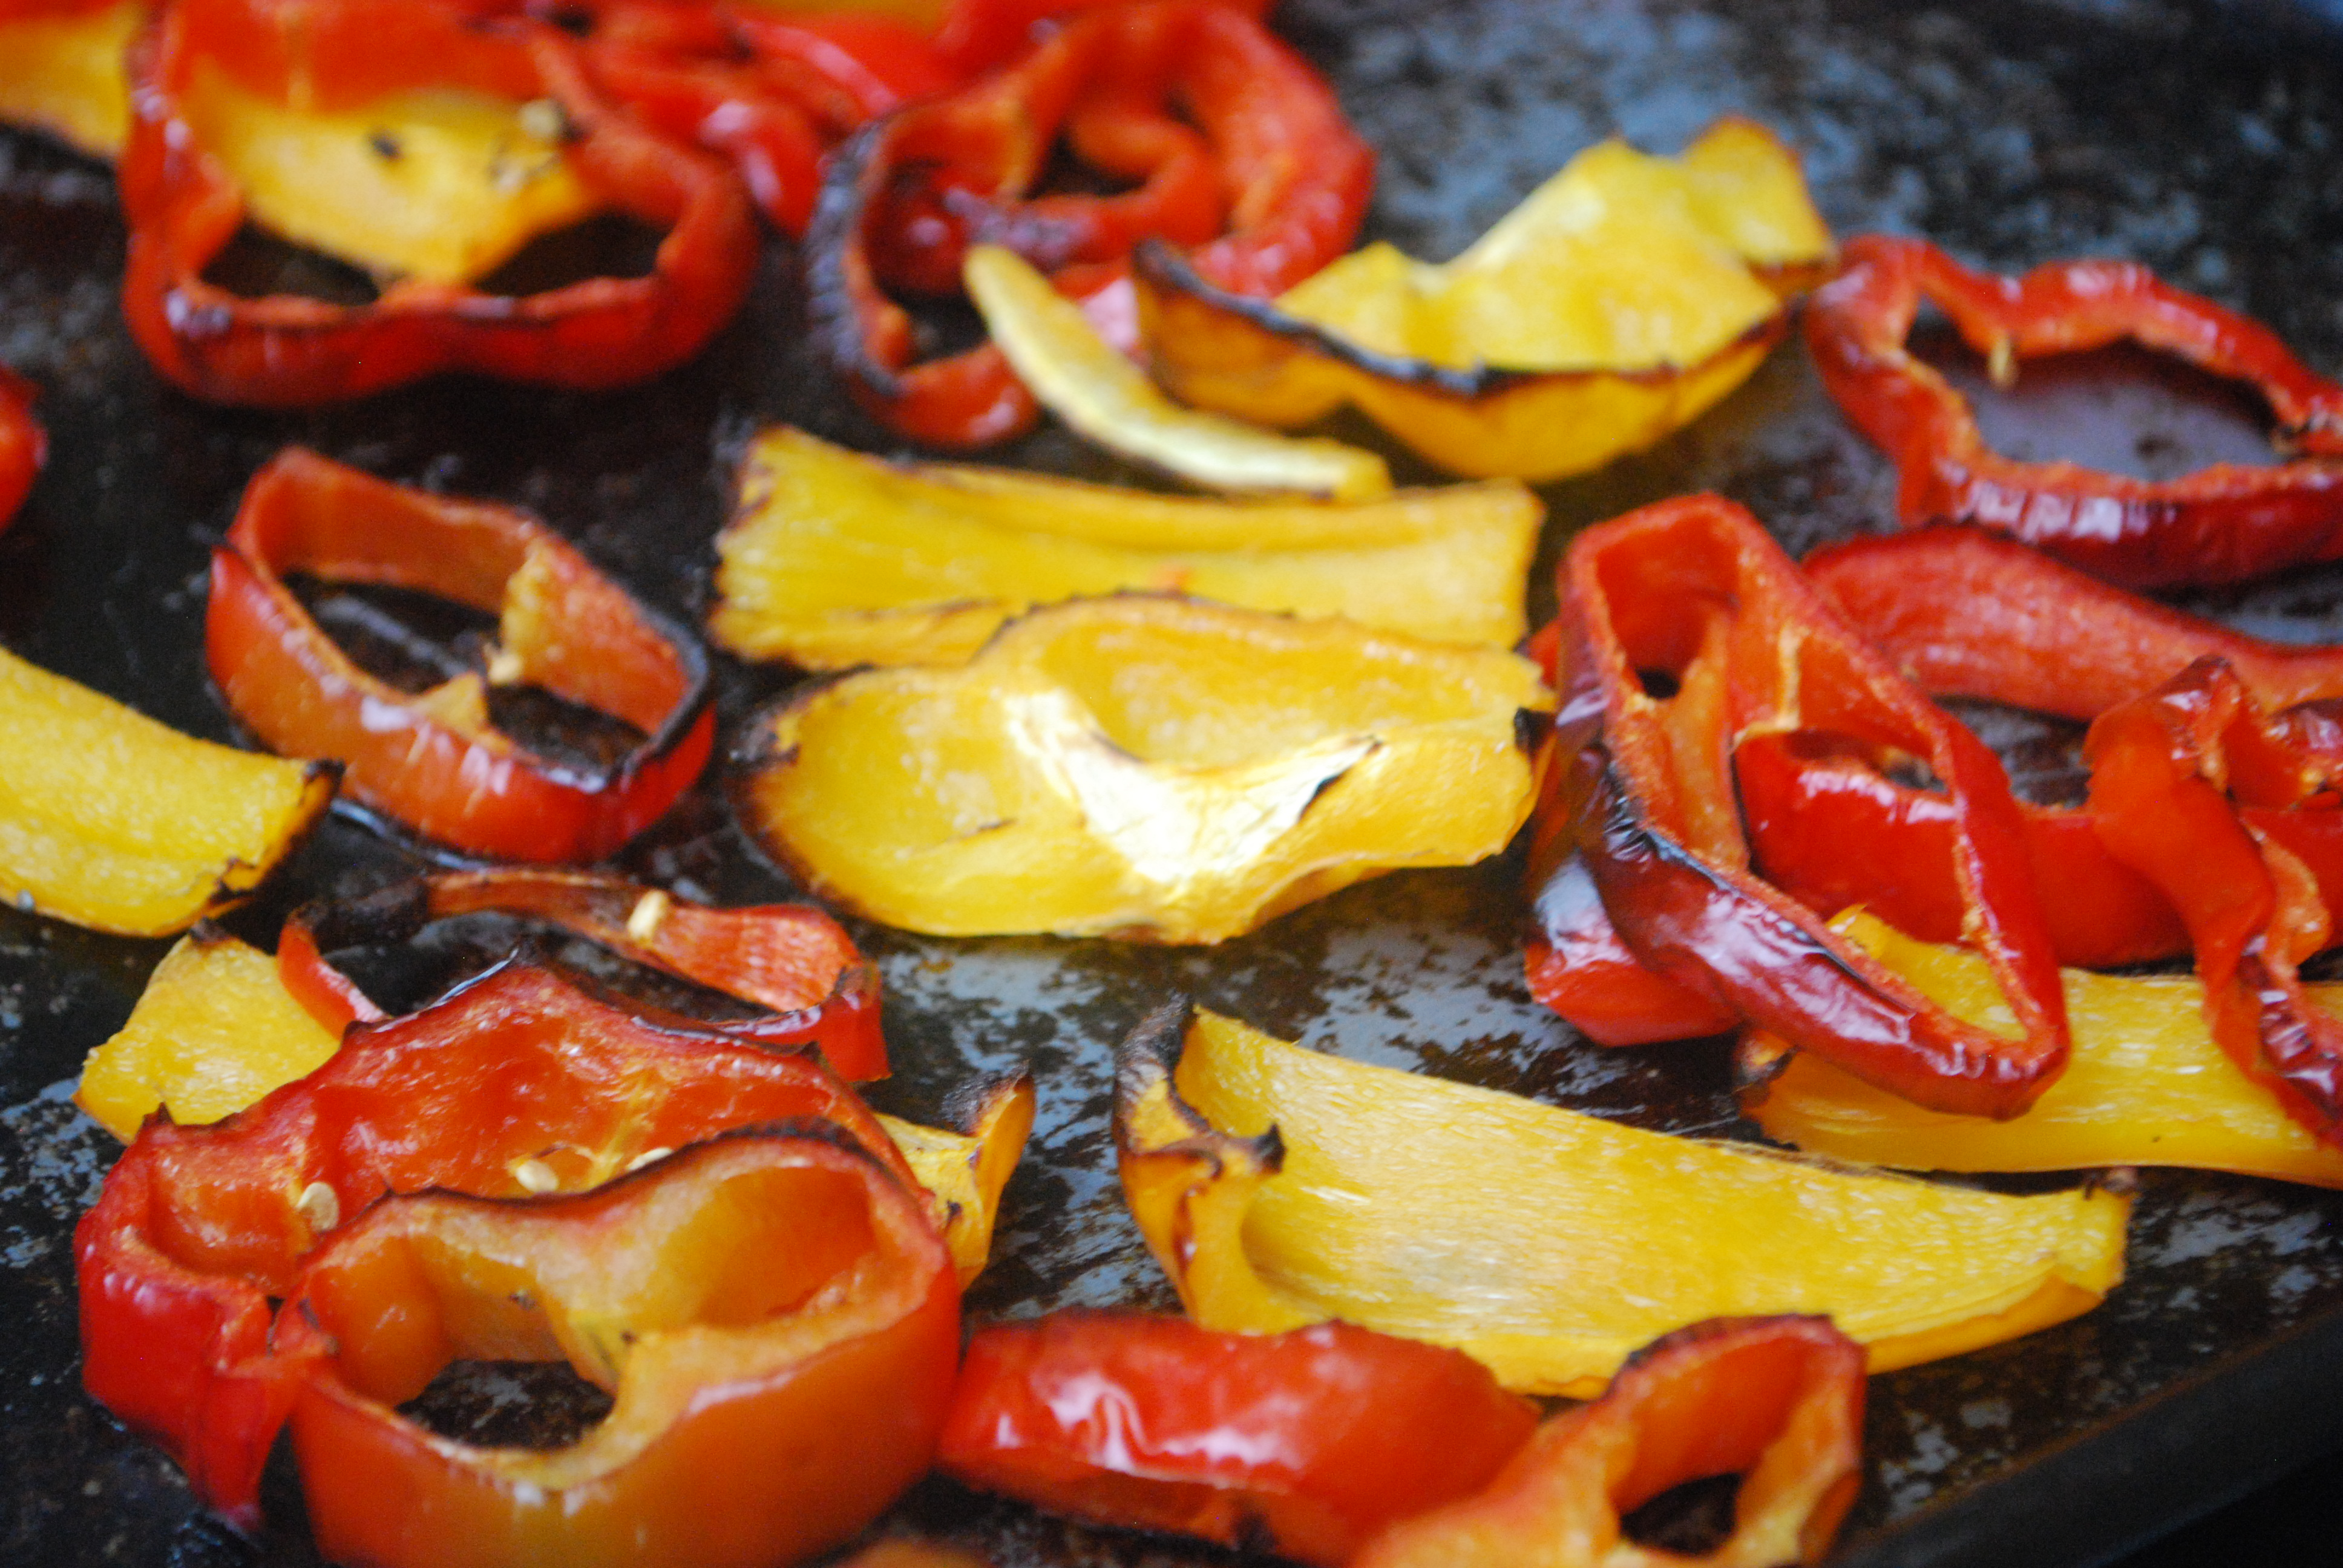 Roasted Red Pepper Pasta Sauce - preparation